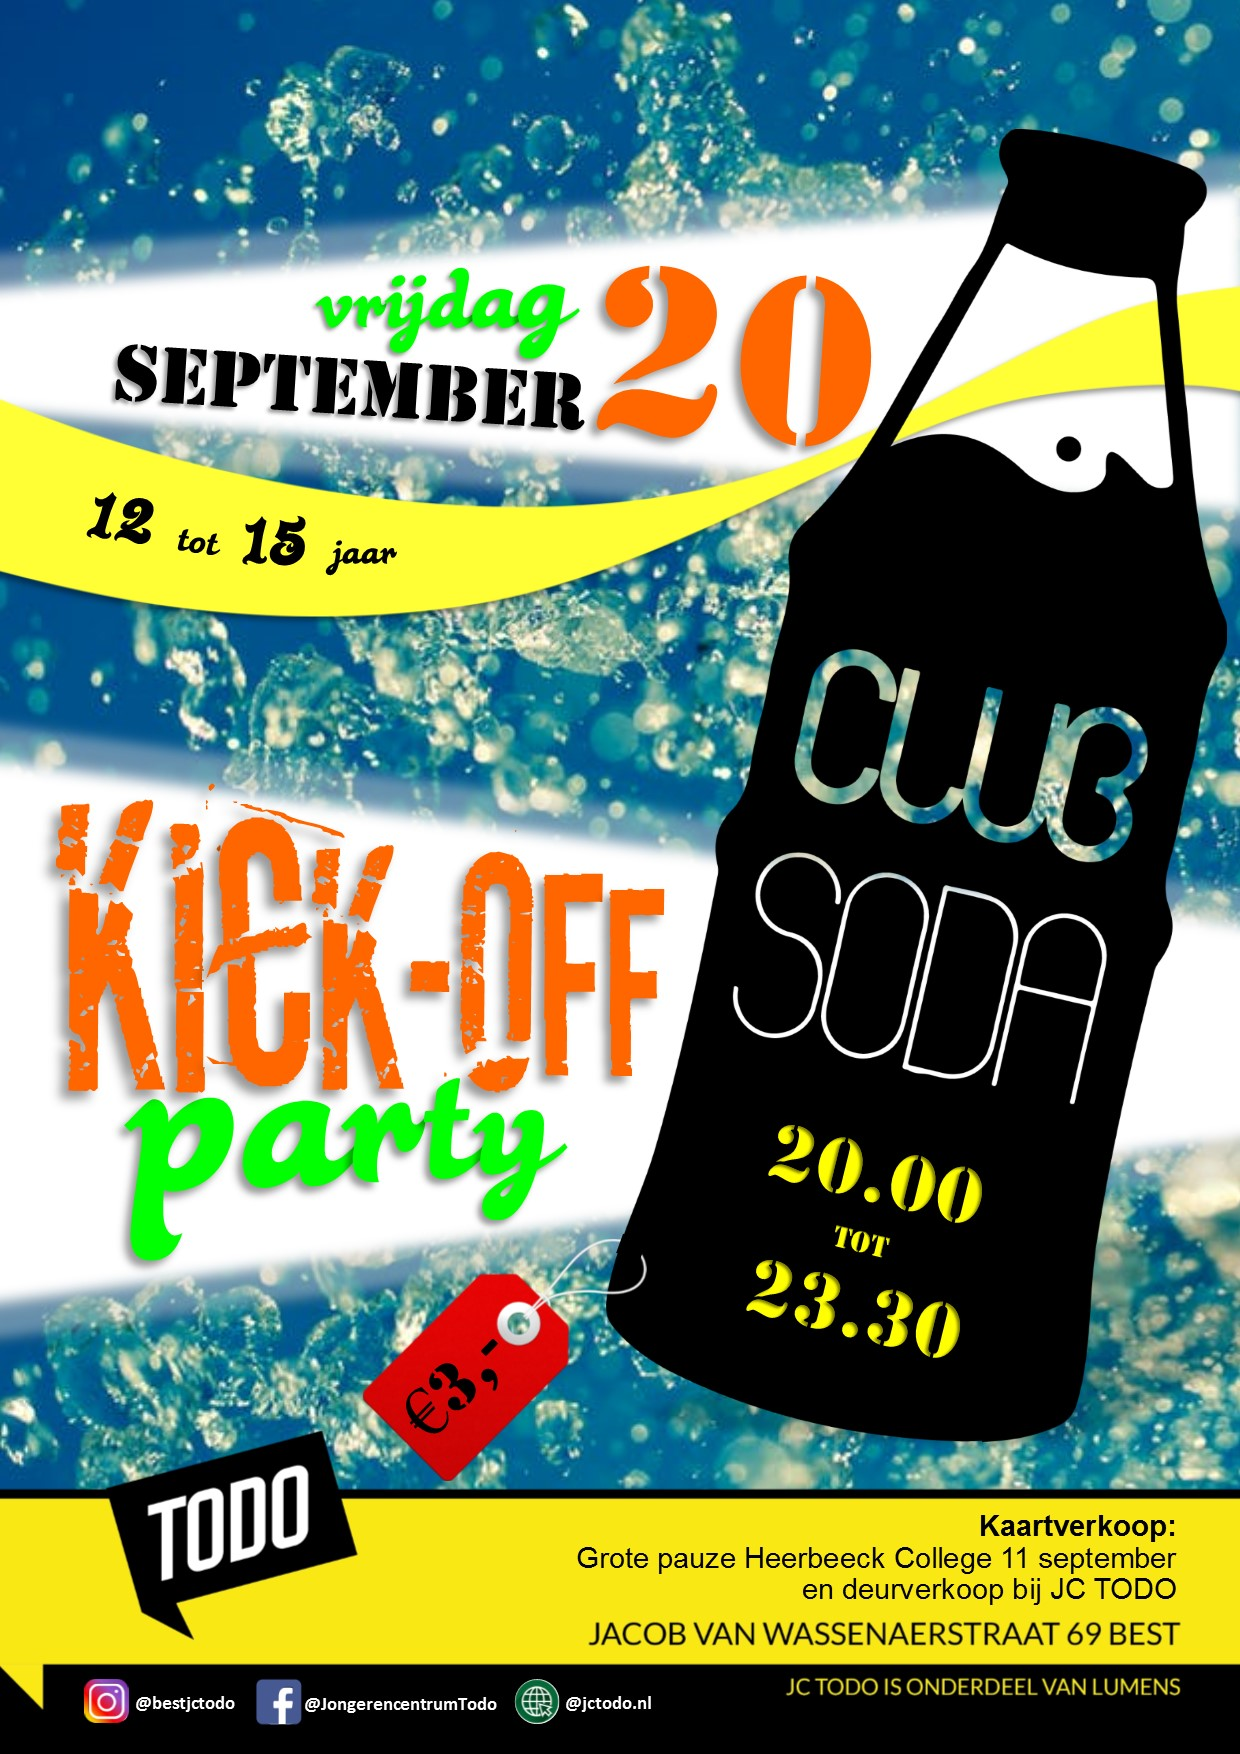 Flyer club Soda Kick off